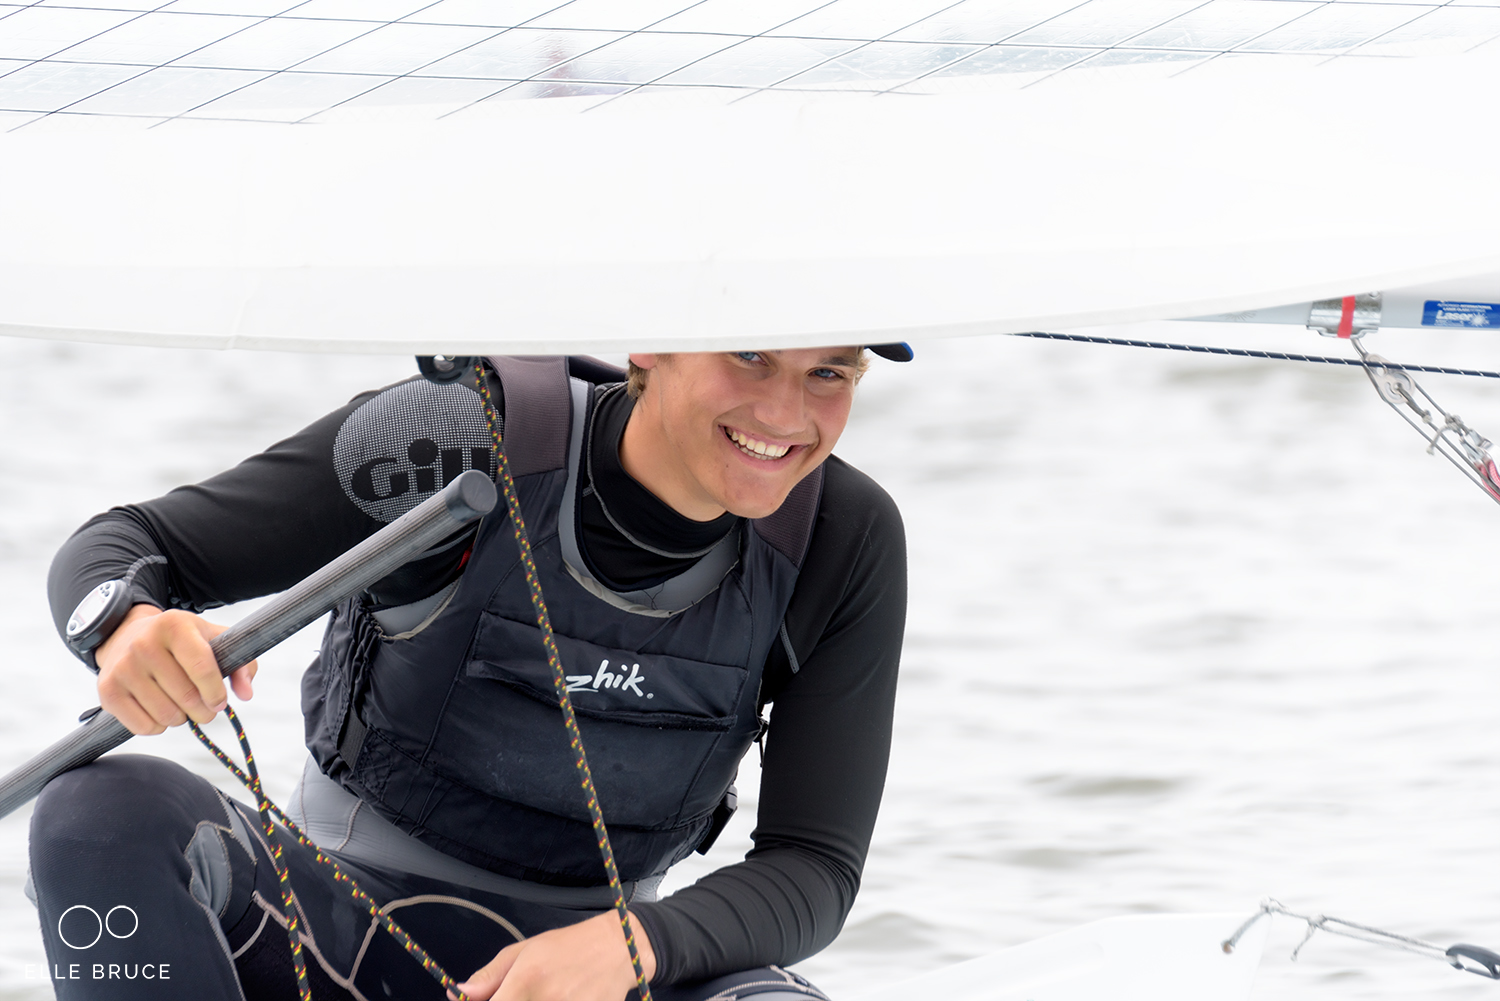 Elle Bruce -2017 LILAC REGATTA - JAMES JUHASZ - 20170527-7366-1200WM.jpg